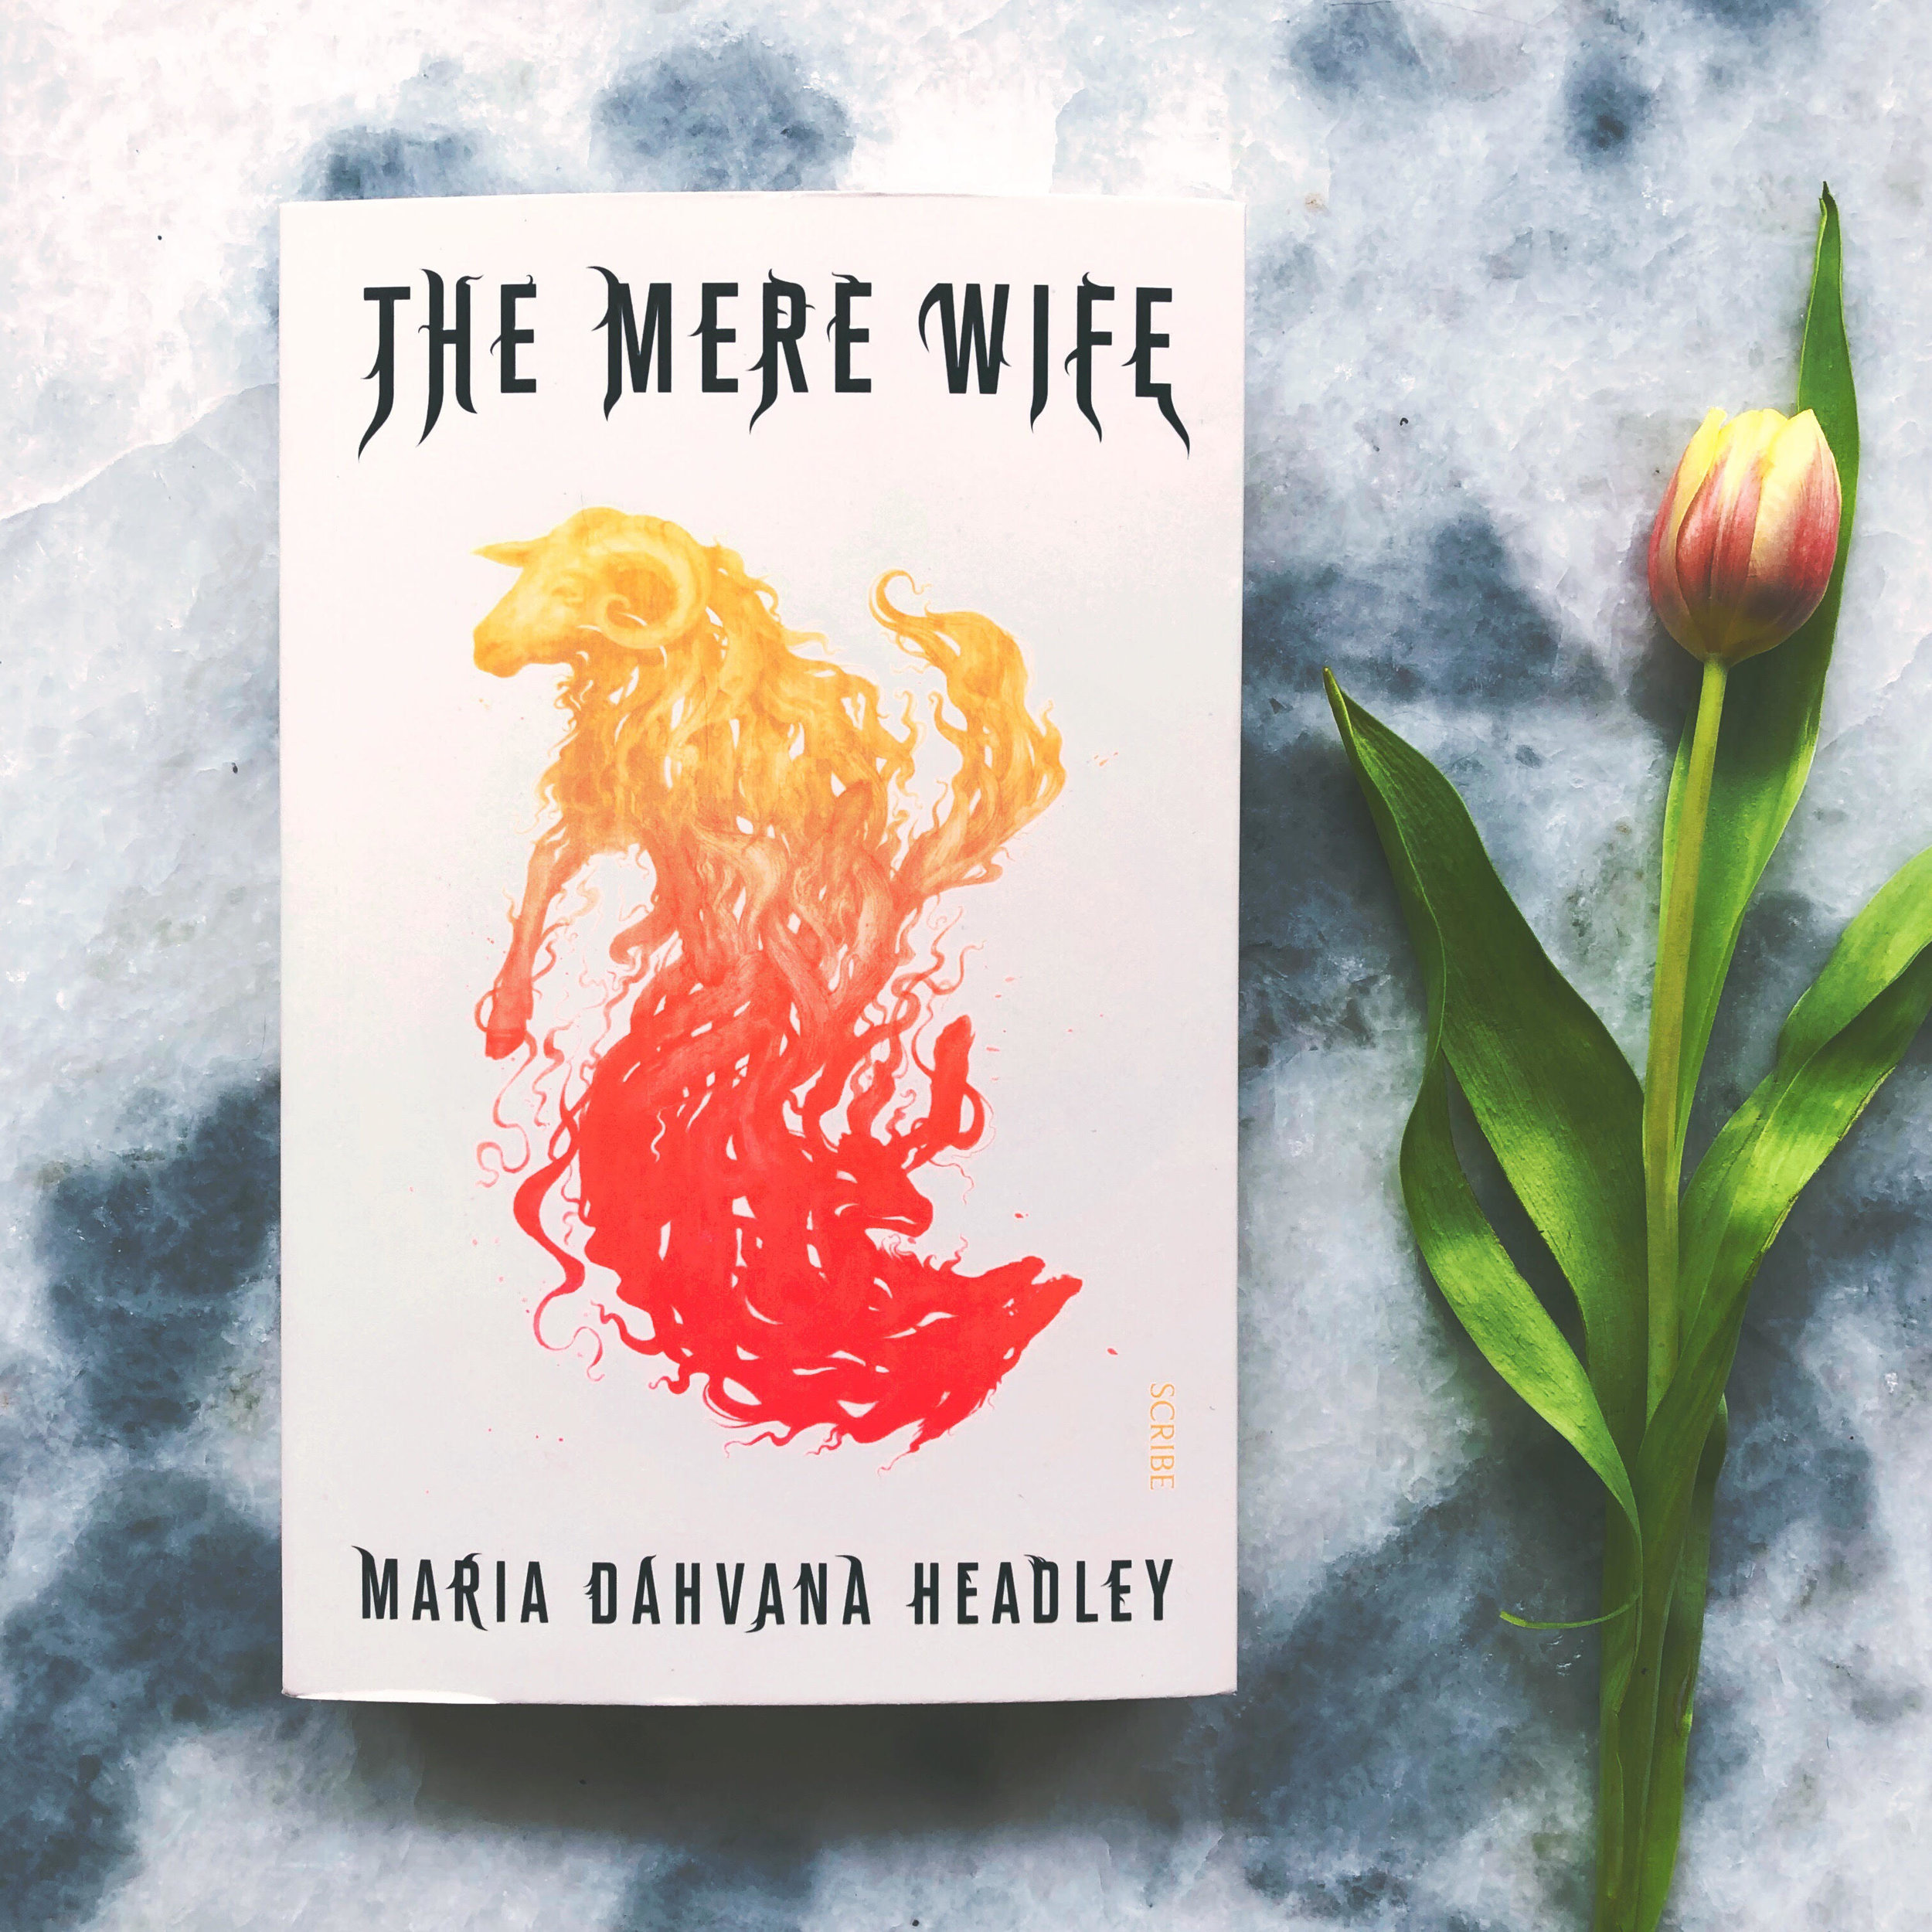 The Mere Wife - by Maria Dahvana Headley